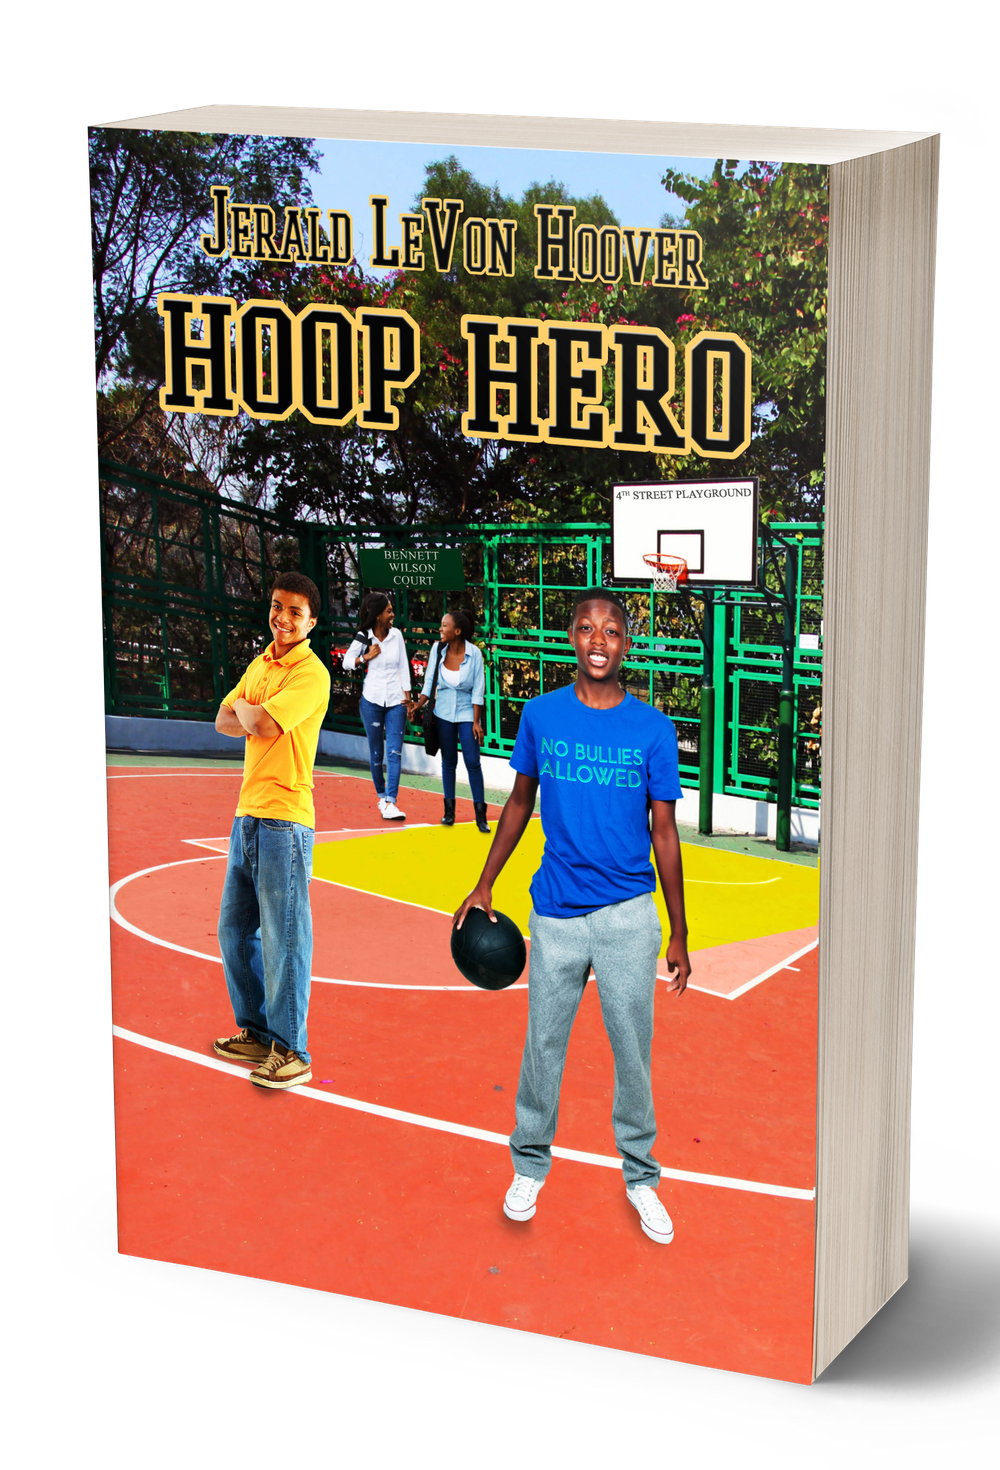 the hero book series, hero, book, series, jerald hoover, levon, class,  friend,  jerald, hoover, literacy, literate, learning. learn, social learning, emotional learning, social emotional learning, basketball, sports, friendship, camaraderie, hoop hero, hoop, hero